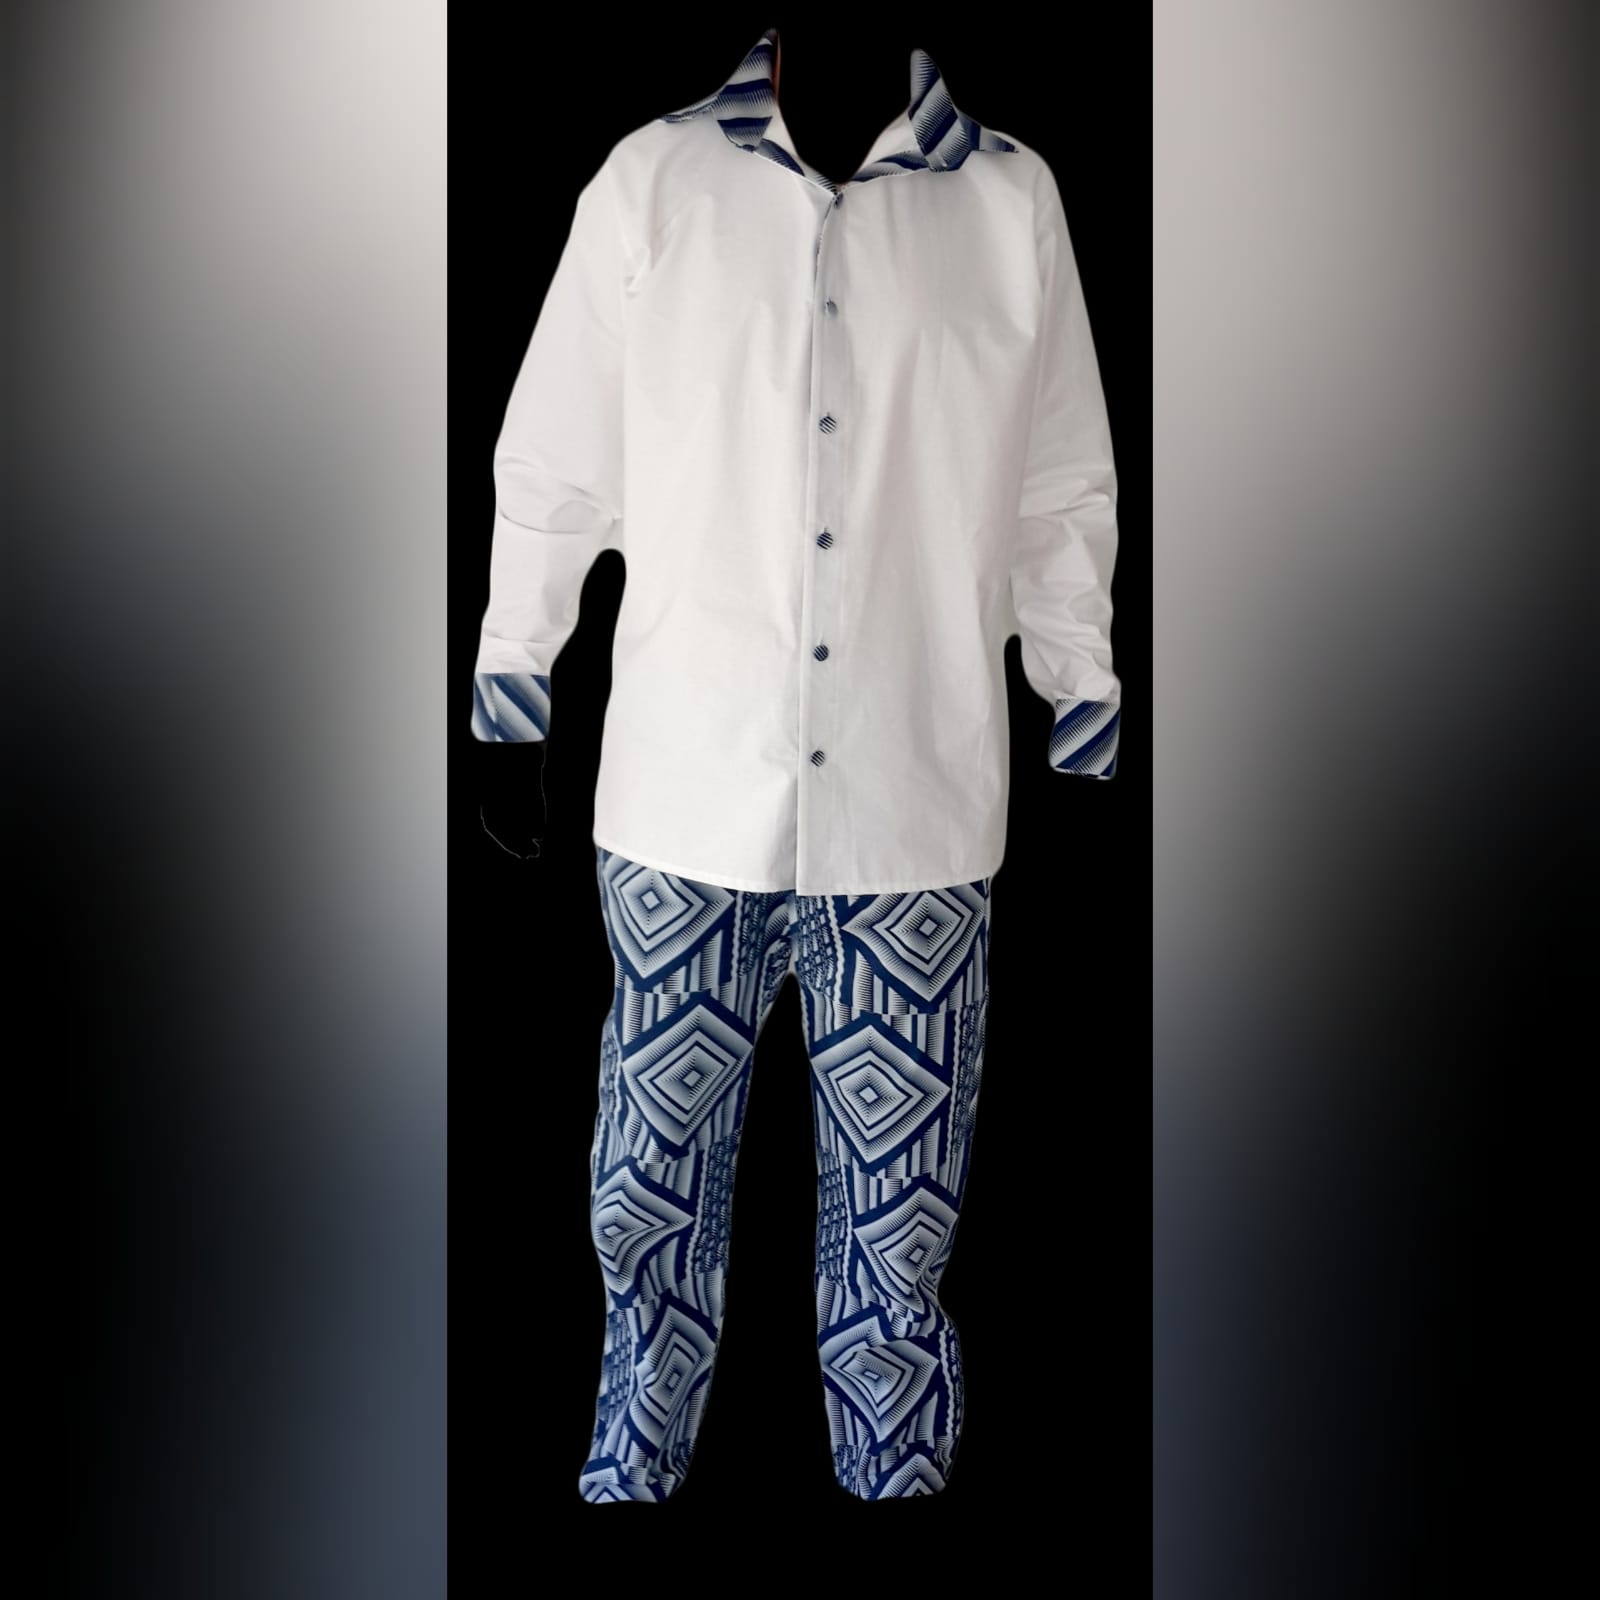 Matching couples traditional shweshwe wedding attire 9 lady: high waisted gathered traditional skirt with white 3/4 sleeve blouse. Gent: trousers and shirt with detailed collar, cuffs and elbow patches. Traditional wedding attire.